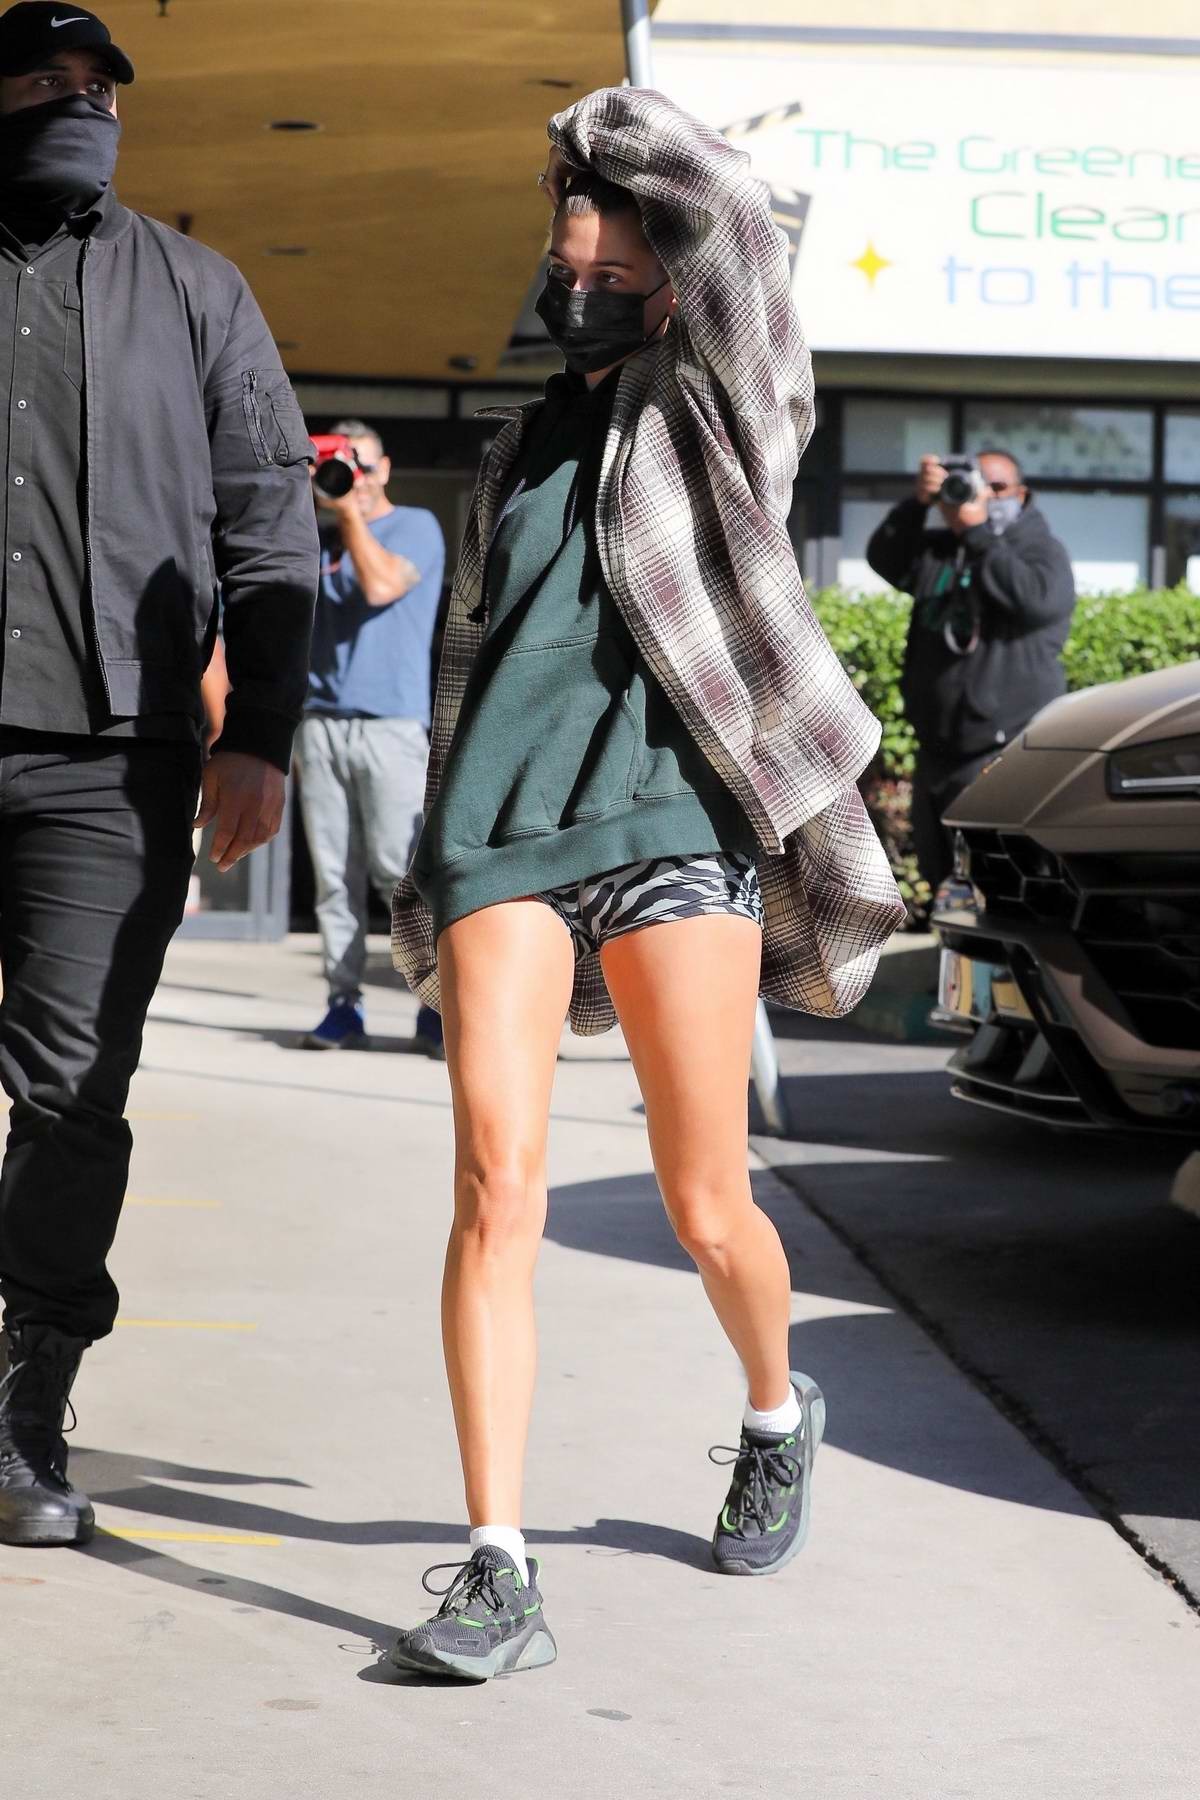 Hailey Bieber grabs some snacks and a smoothie from EarthBar with Kendall Jenner in West Hollywood, California